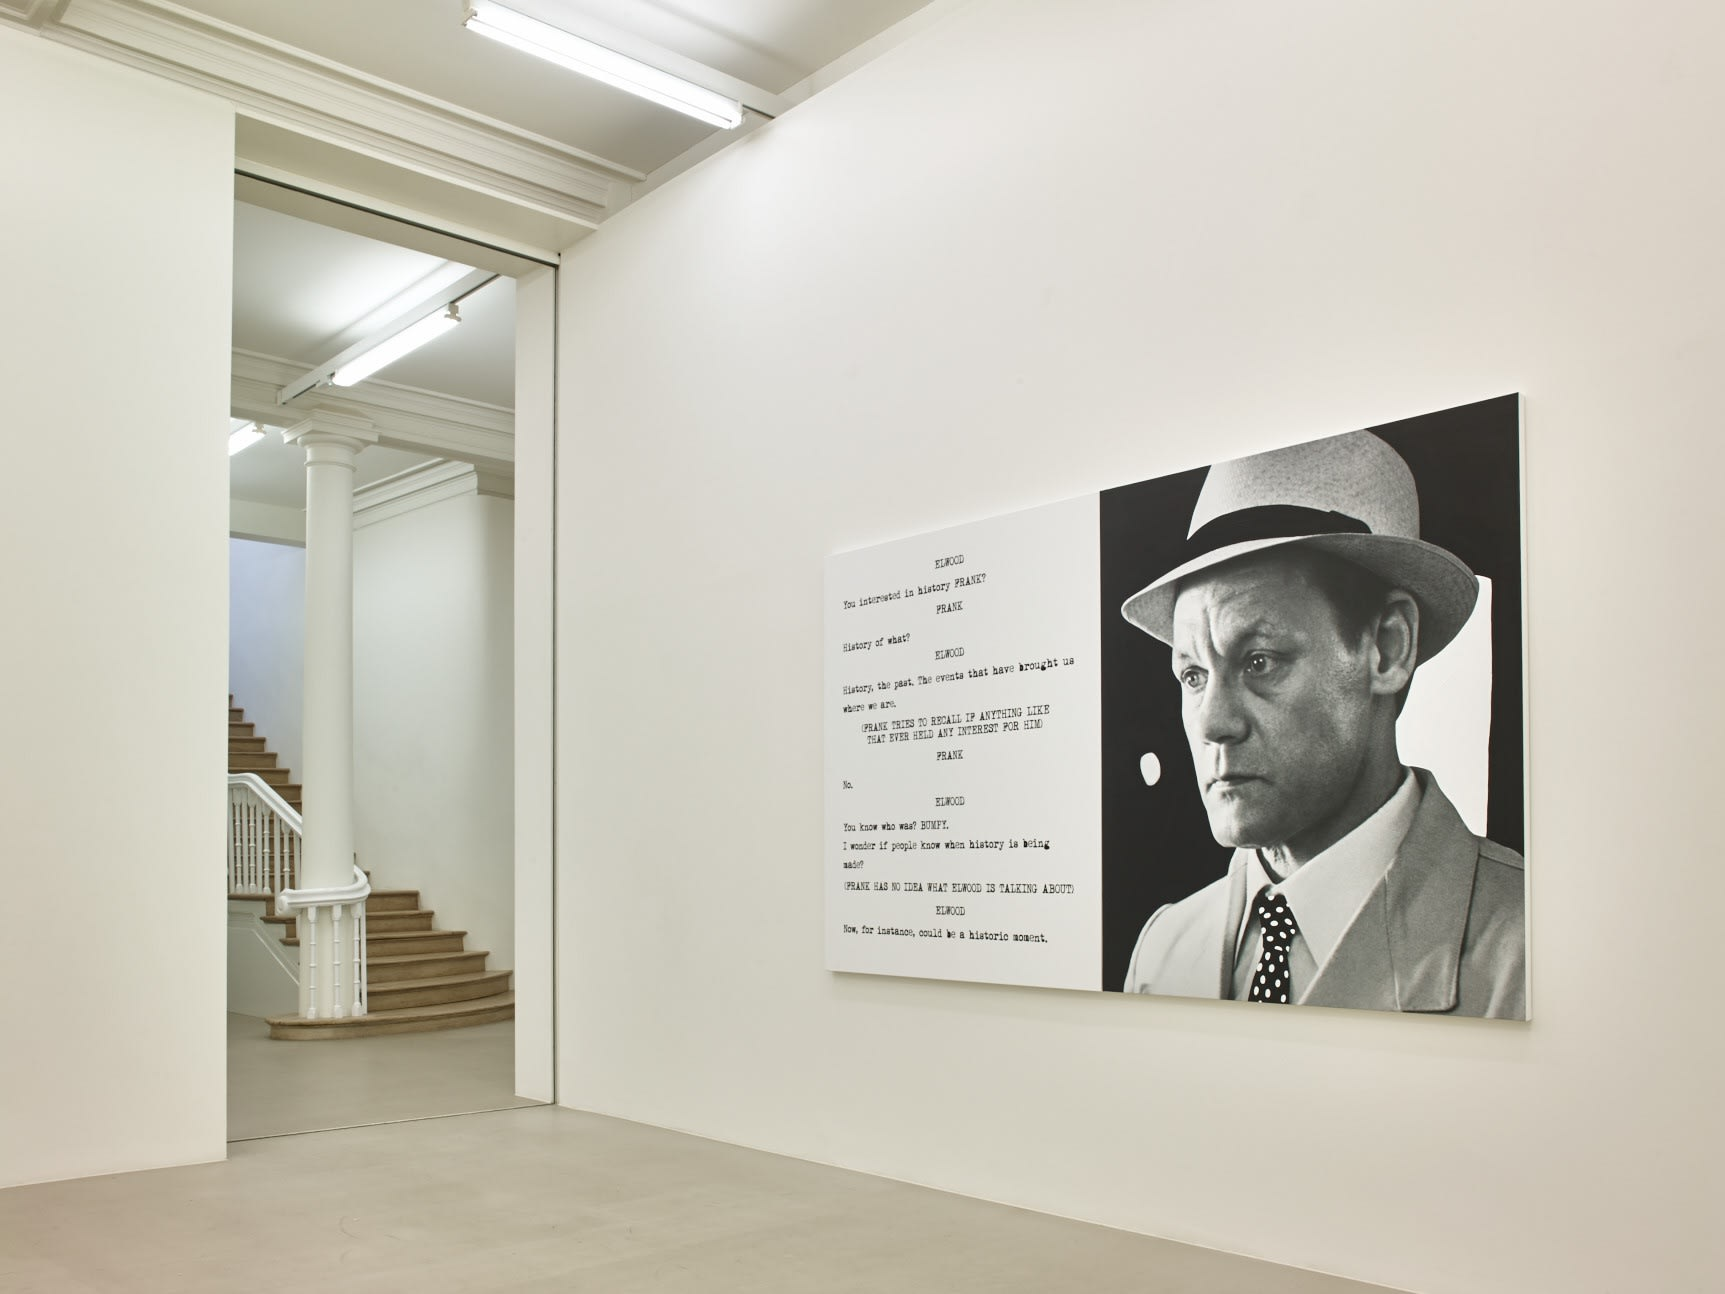 In a large white space with columns, a large paintings hangs, roughly half image and half text, which is in the format of a film script. The image is of a man in a suit and fedora. To its left, in the background, a stone staircase leads upstairs.